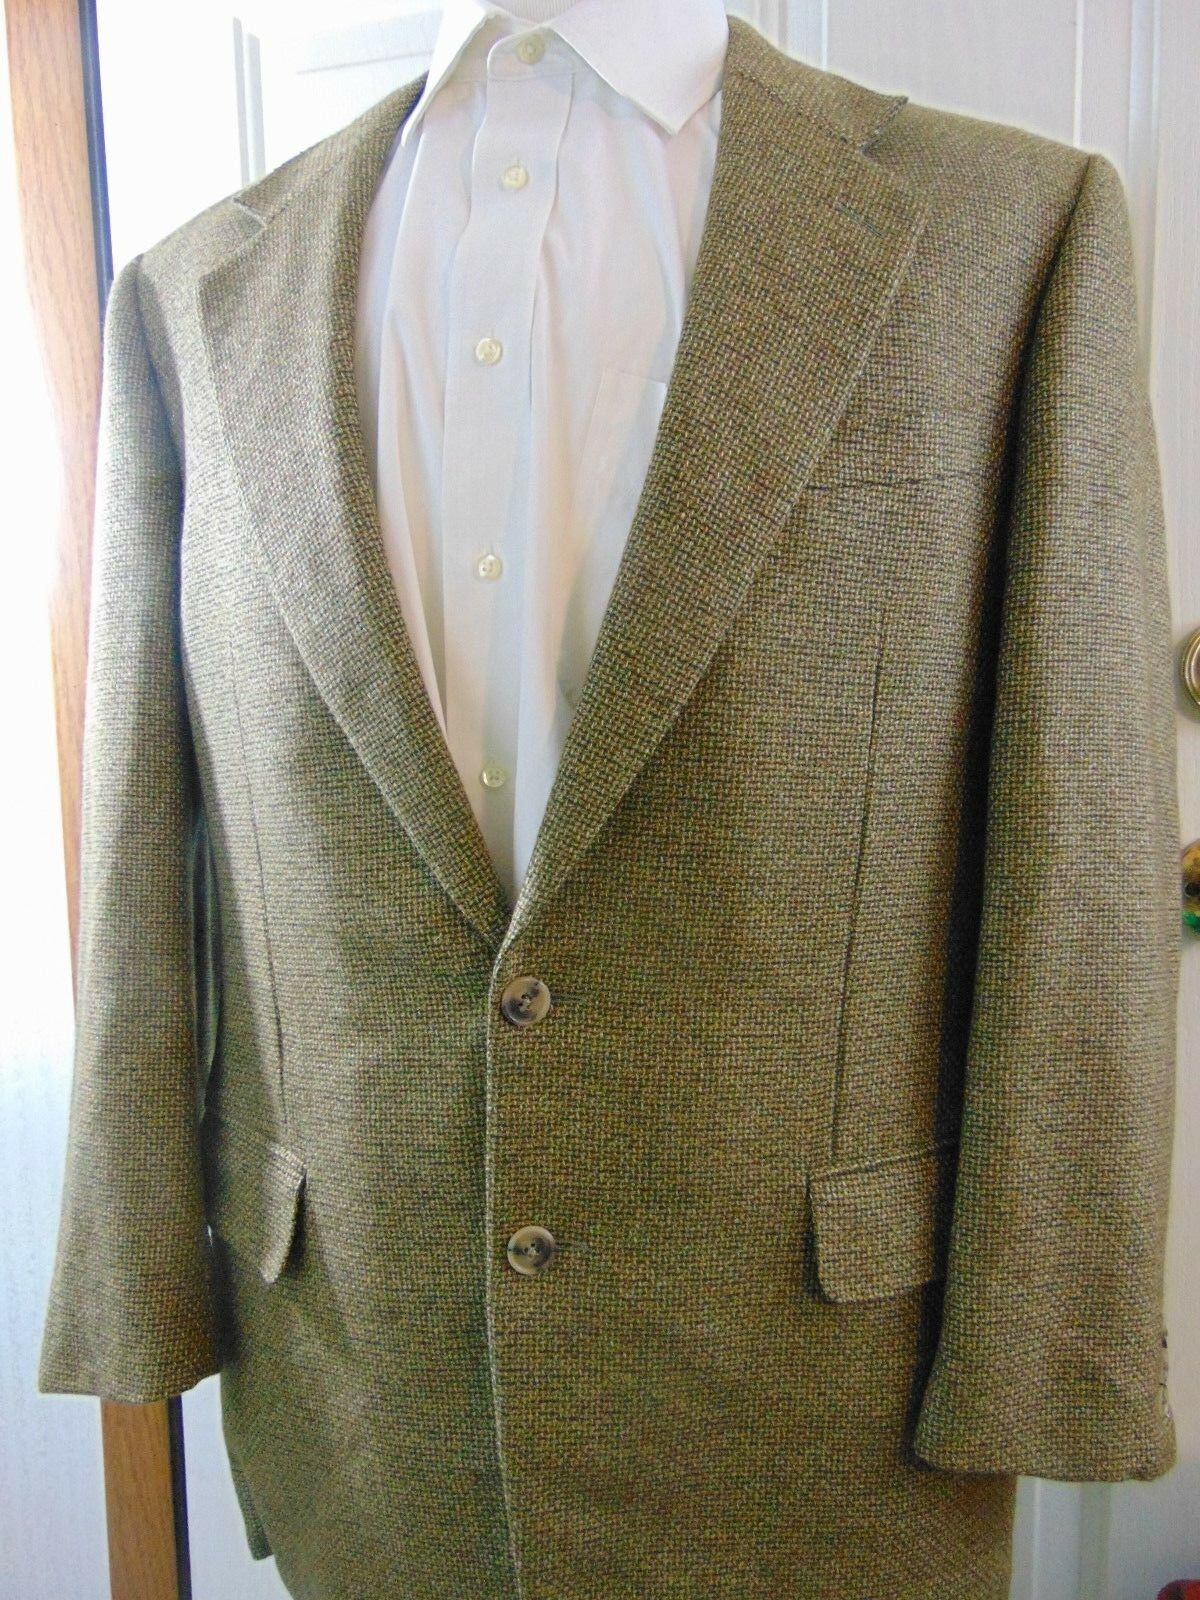 ERMENEGILDO ZEGNA Multi color Tweed 100% Cashmere Blazer 52REG 42R US VGUC